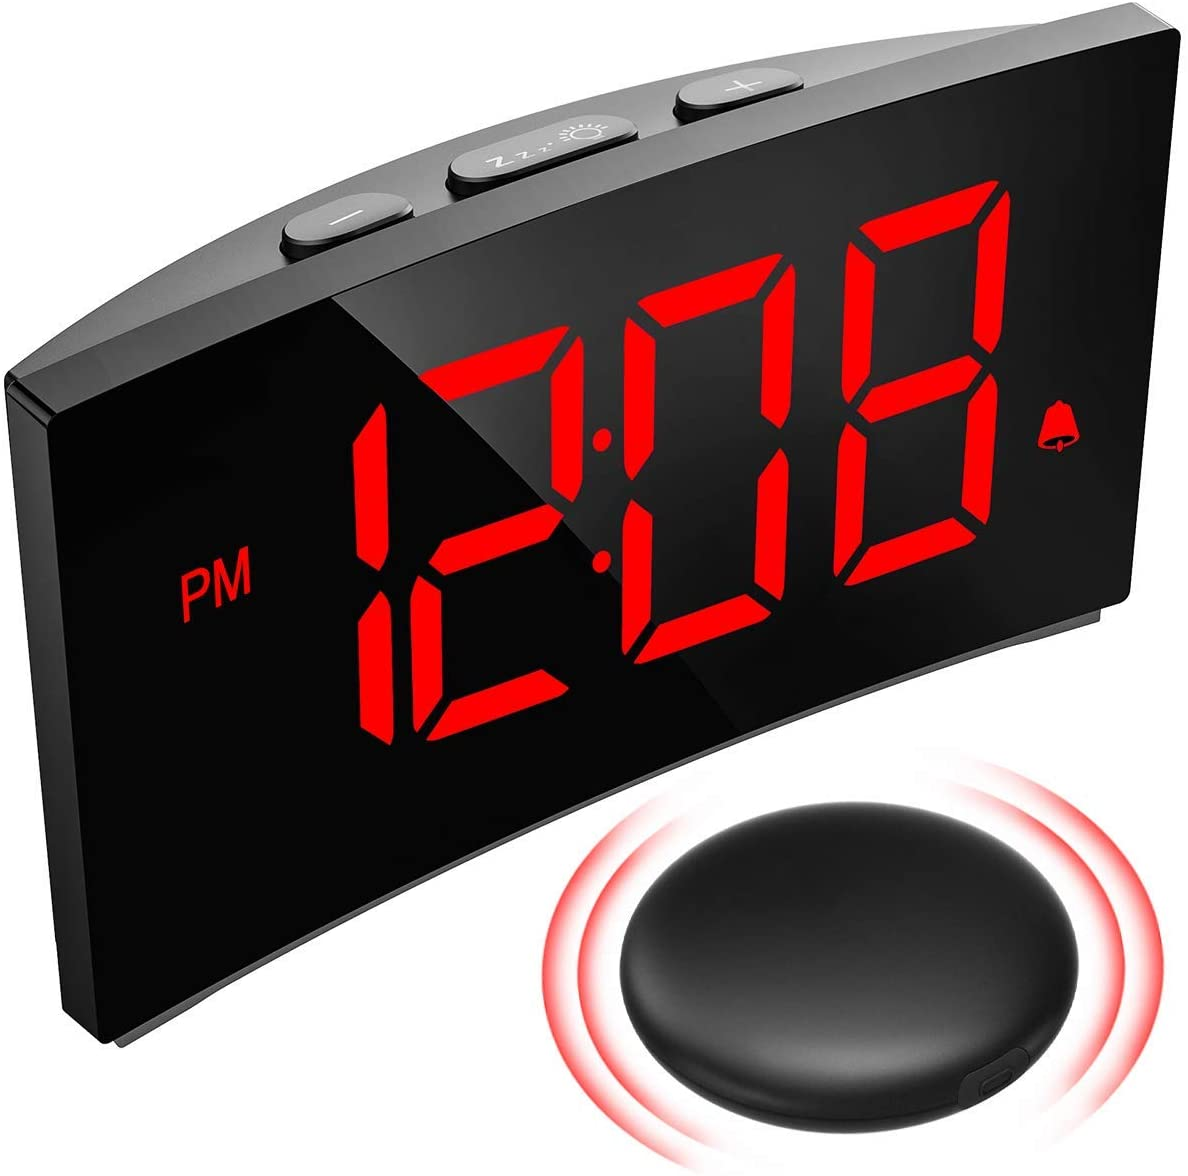 pictek loud alarm clocks with wireless bed shaker vibrating alarm clock for heavy sleepers hearing impaired deaf